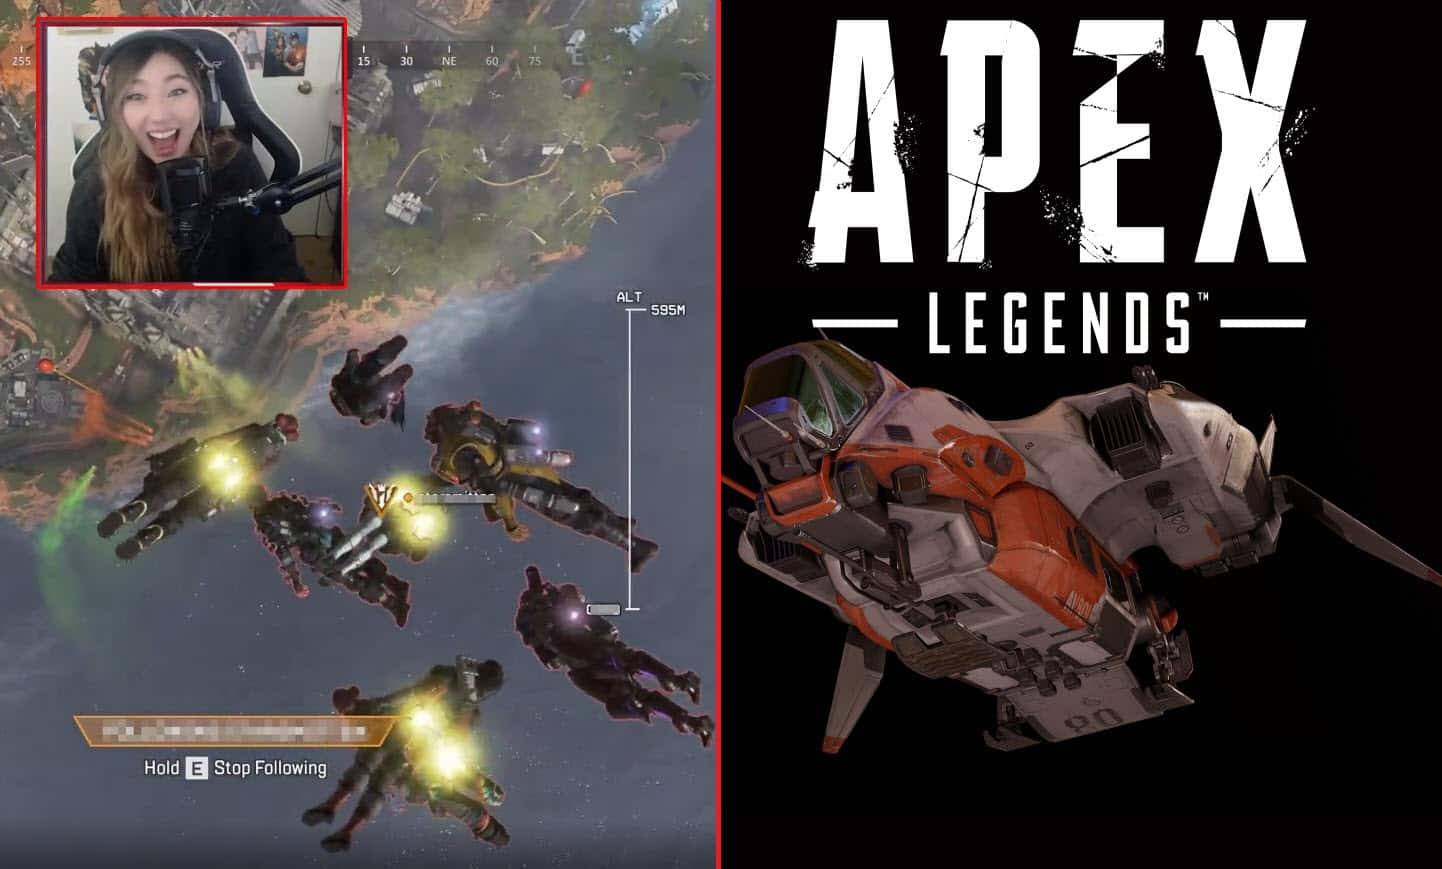 One in a Million Apex Legends Moment from Dropship